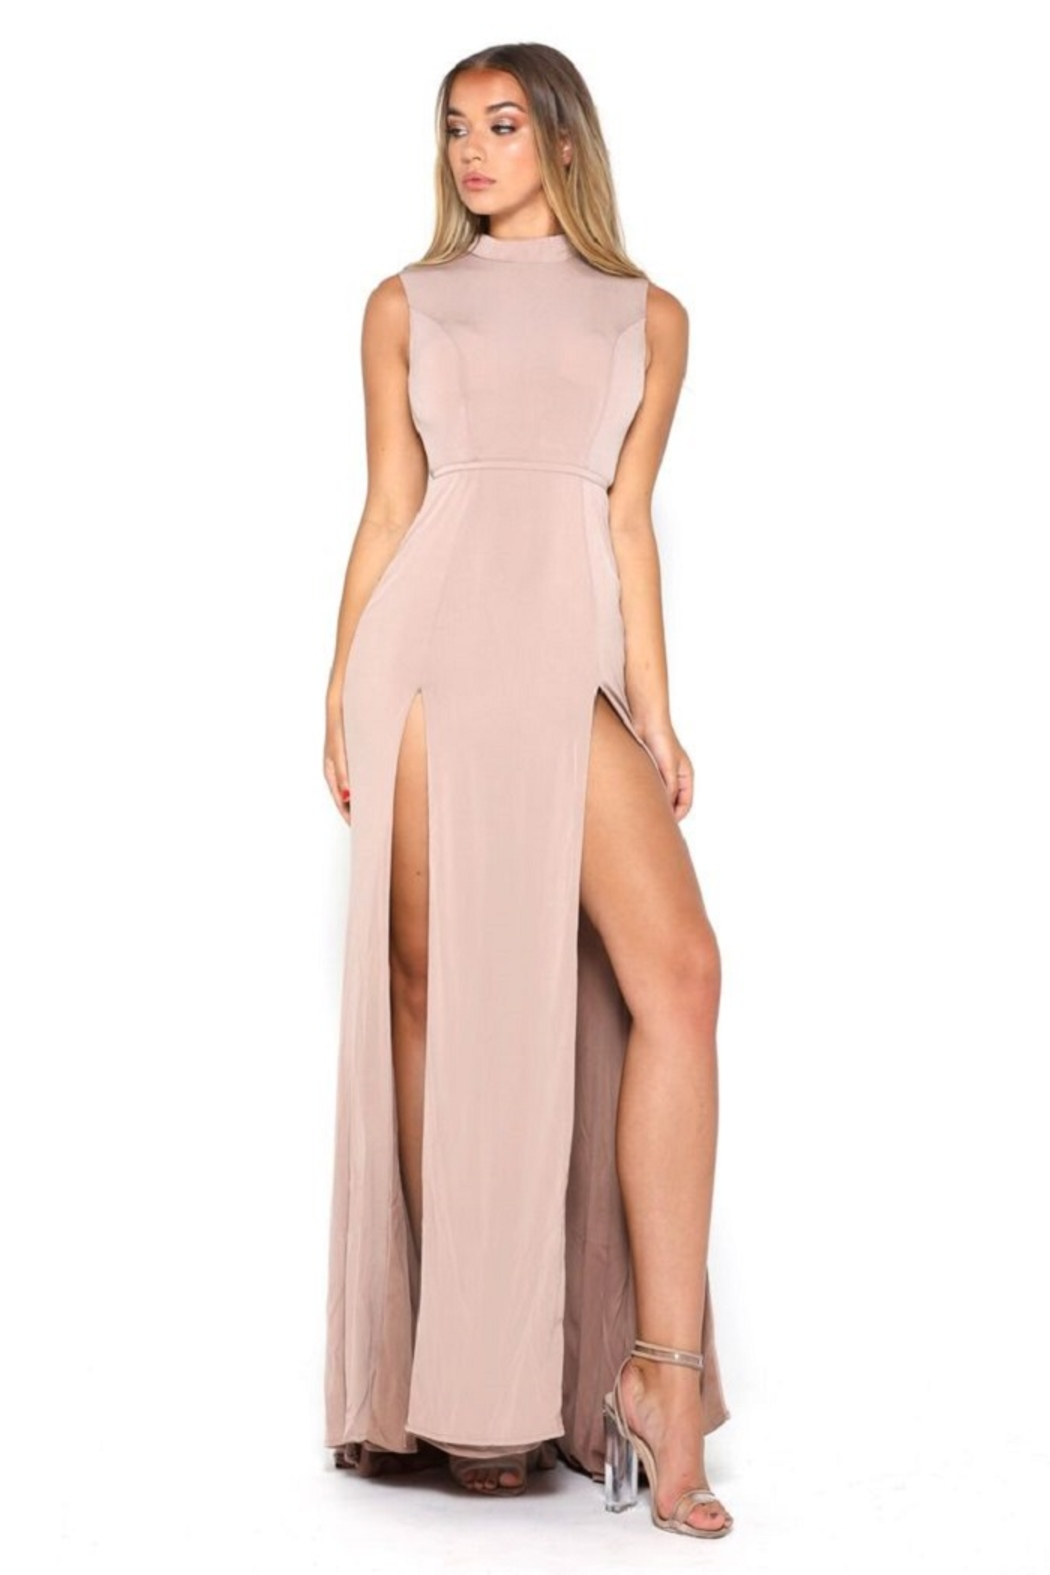 PORTIA AND SCARLETT Nude High Neck Long Semi-Formal Dress - Main Image